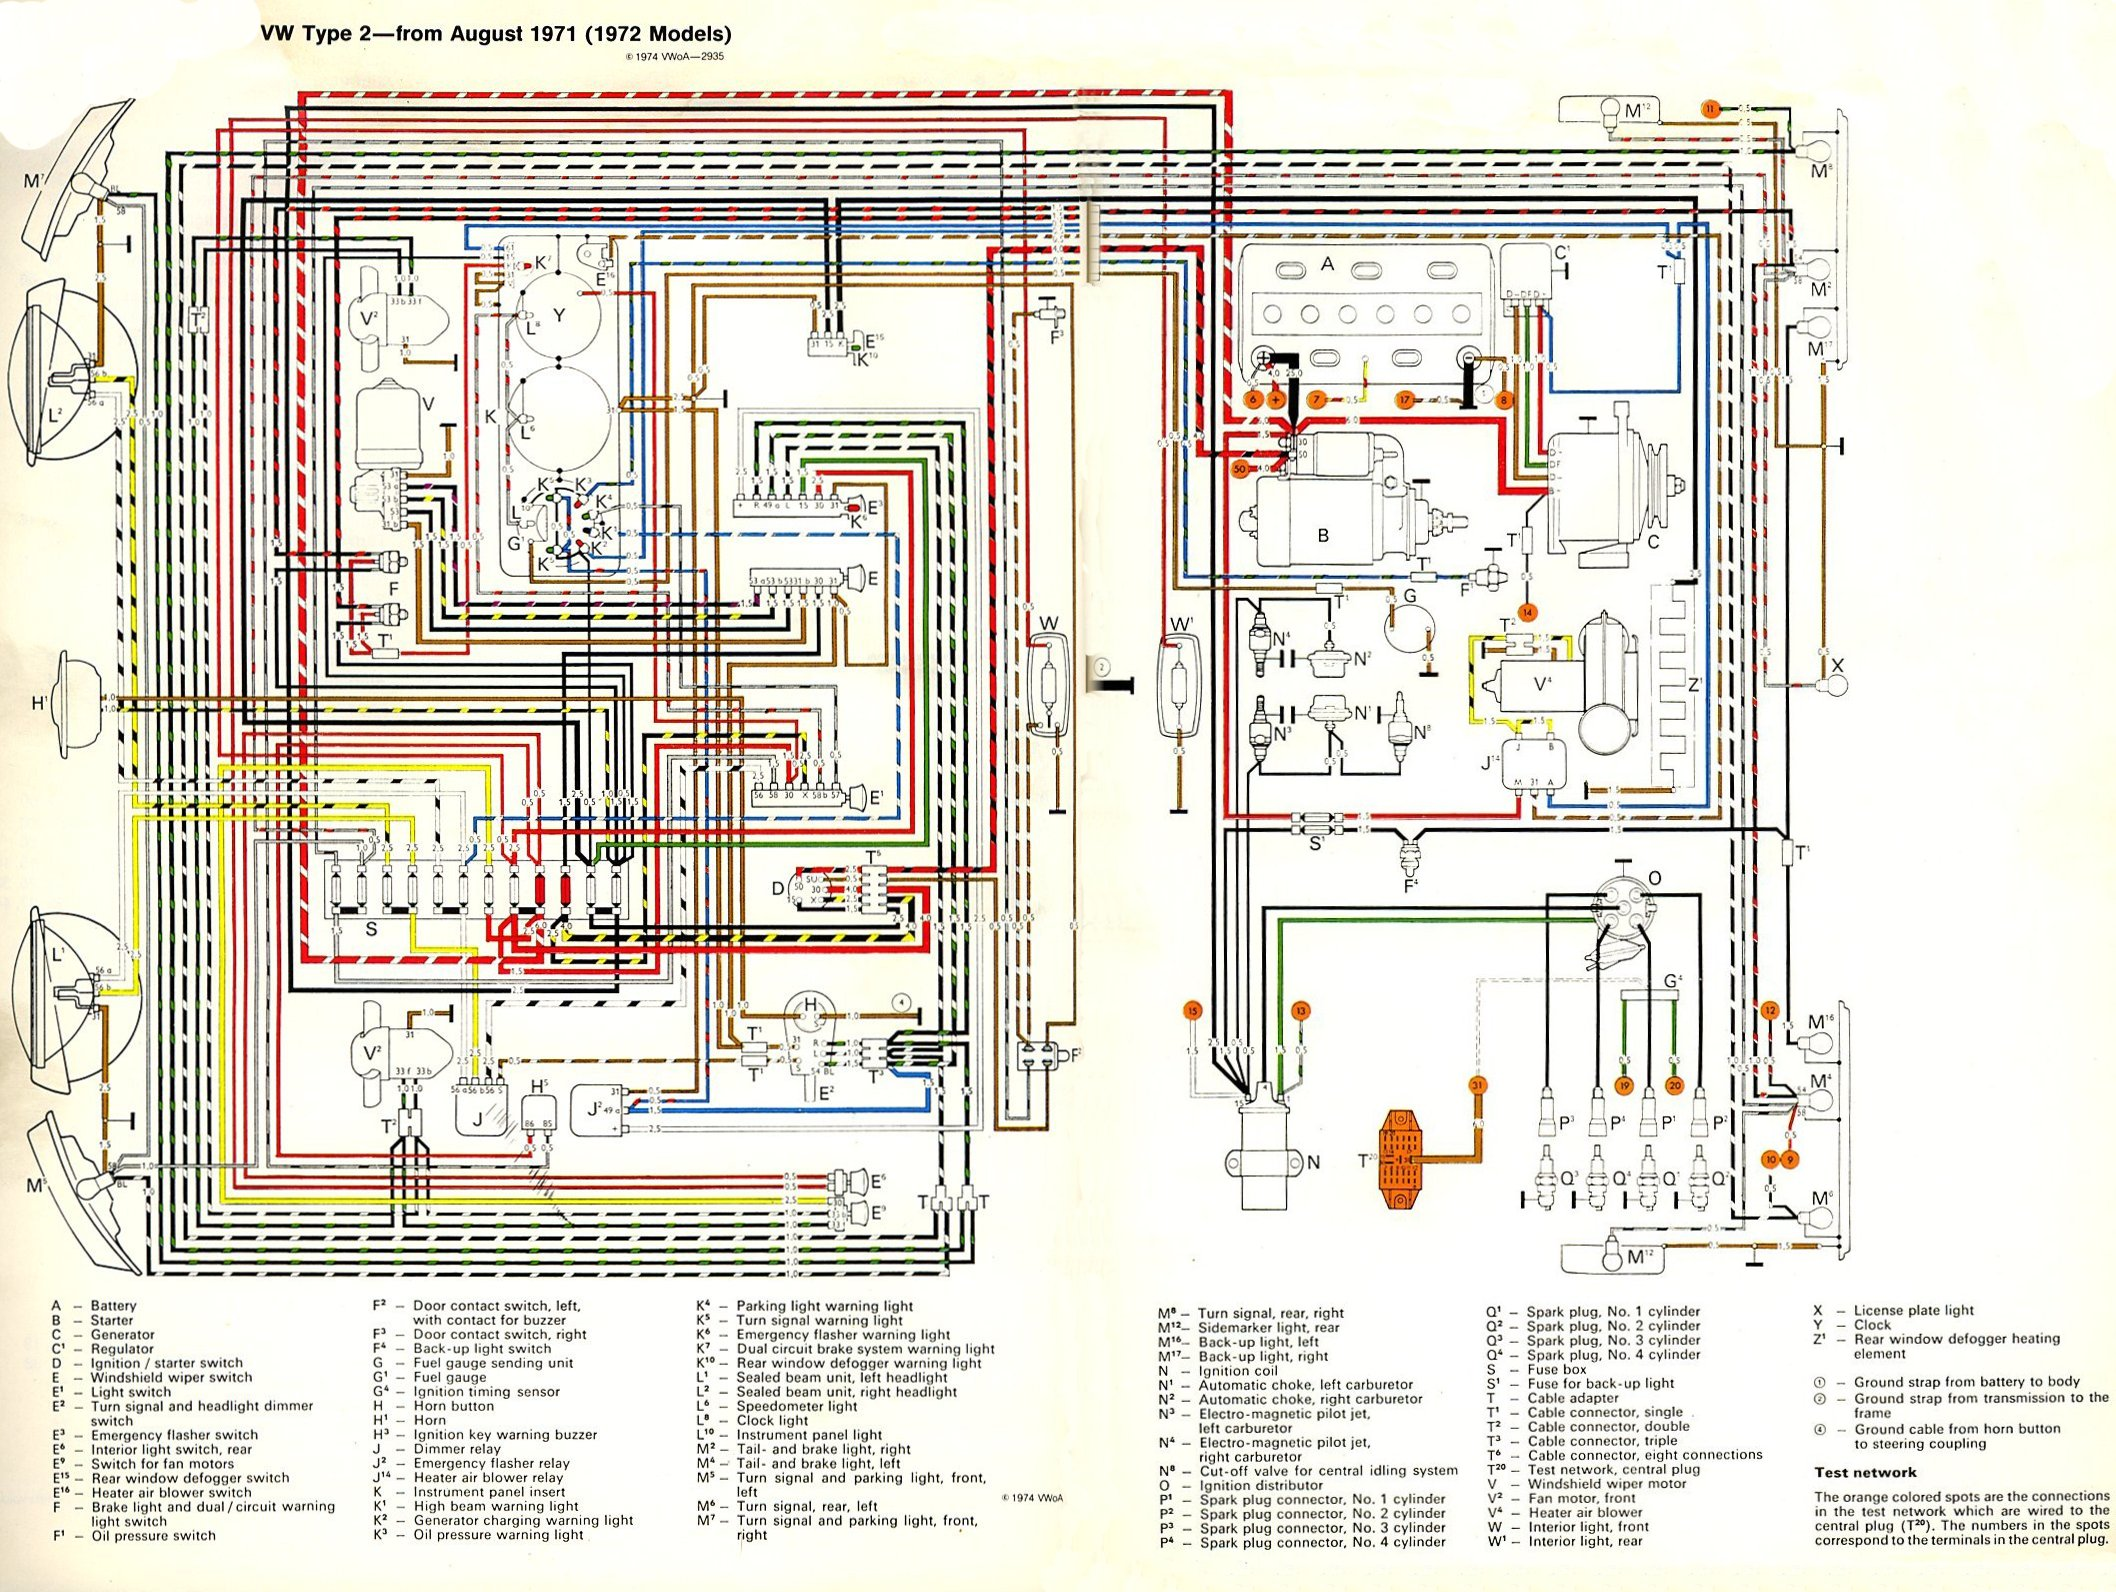 bus_1972_wiring wiring diagram for 1971 vw bus readingrat net 1971 vw bus wiring diagram at beritabola.co